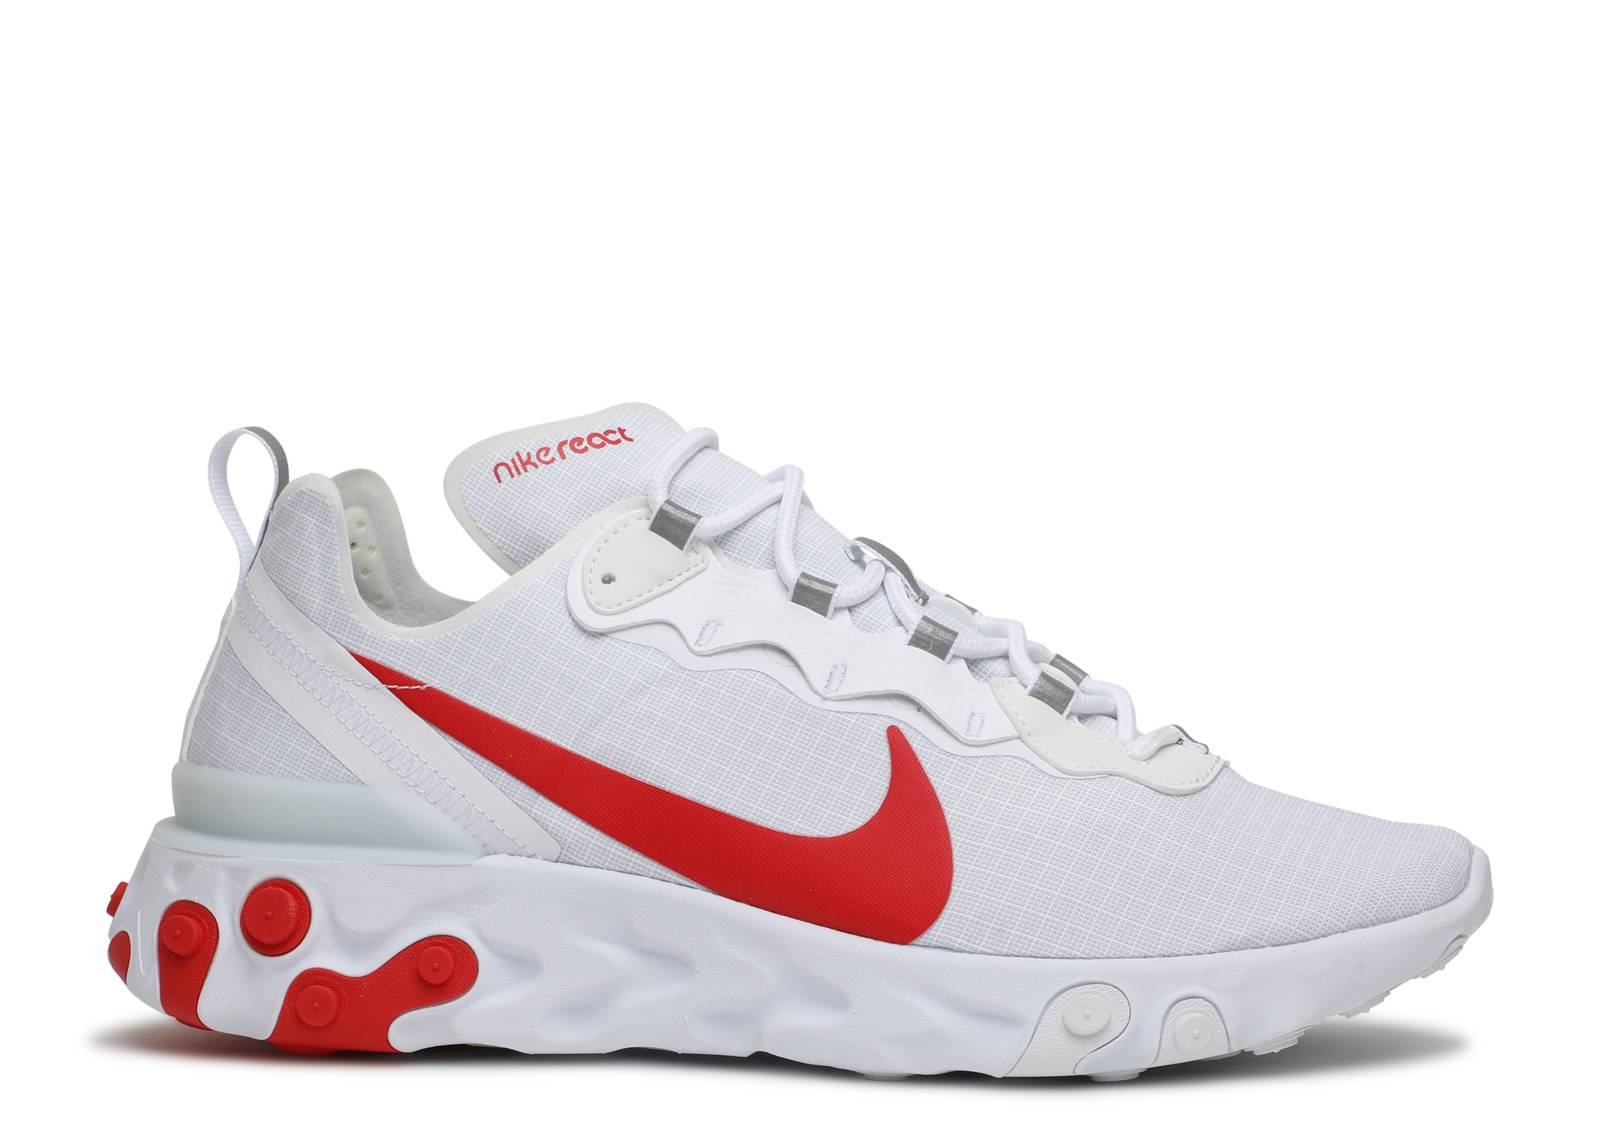 Supermercado Monje Medicina  React Element 55 'White University Red' - Nike - BQ6167 102 -  white/university red | Flight Club